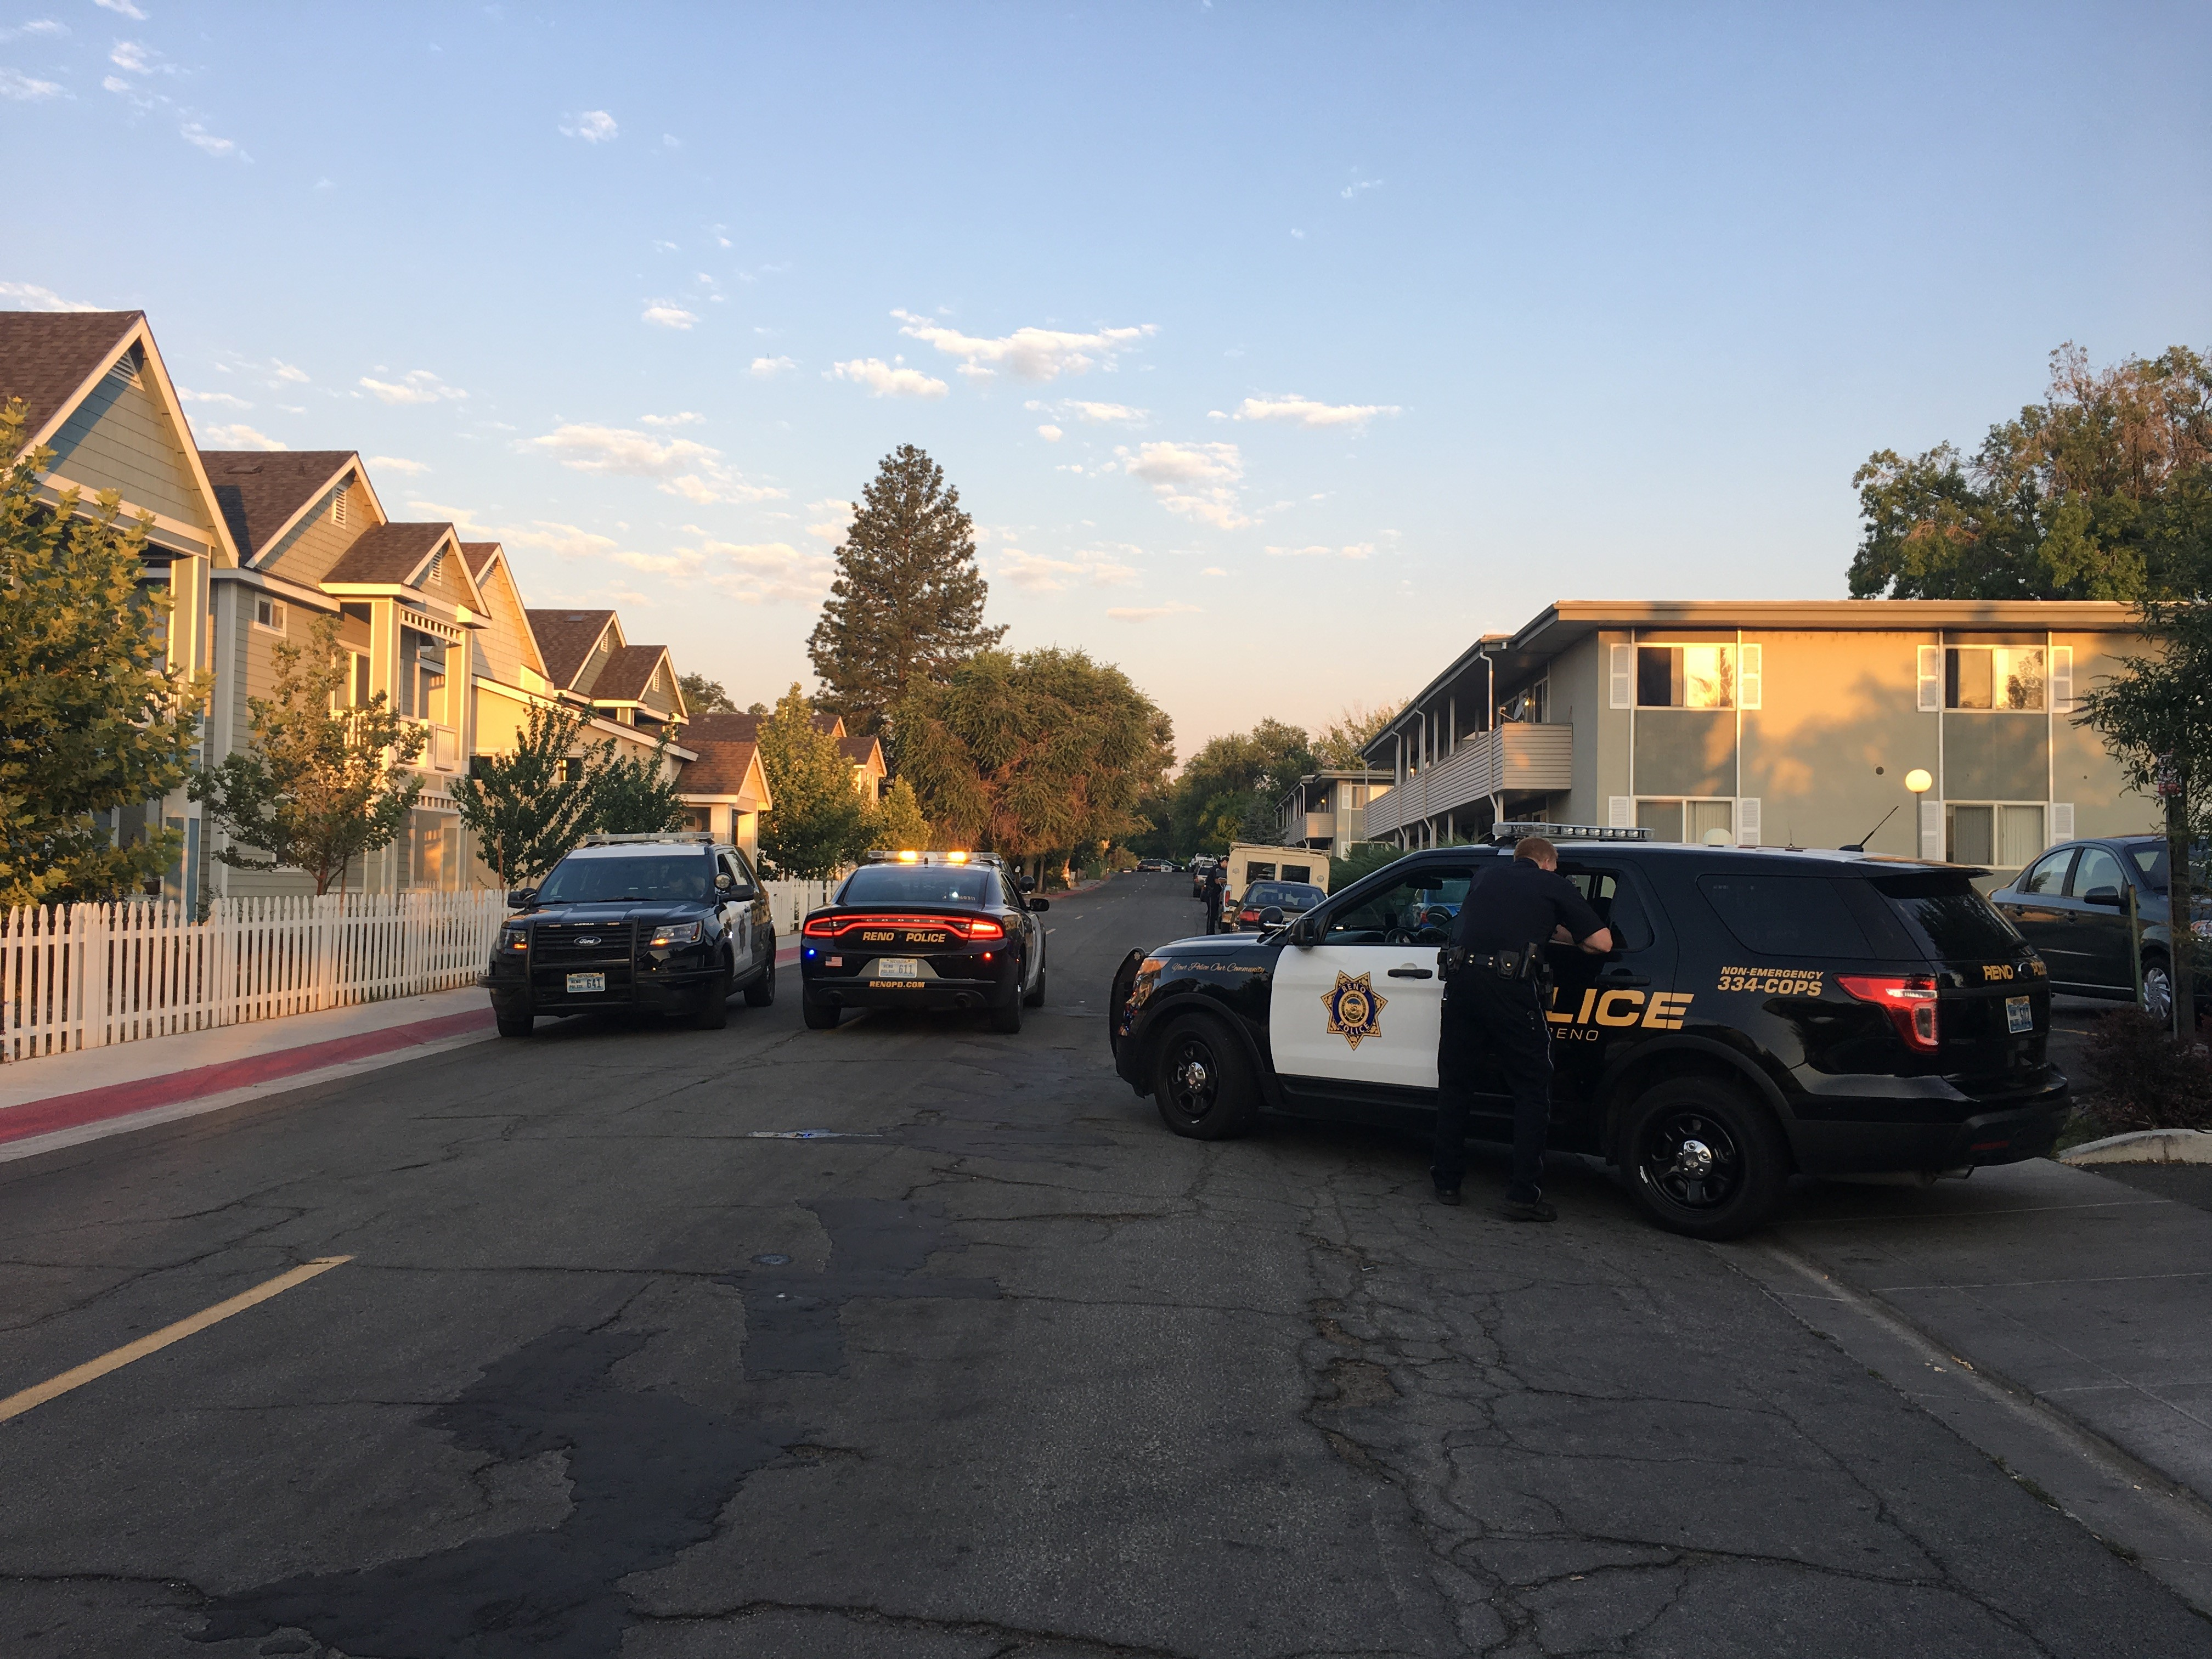 Heavy police activity in the area of Lakeside and Hillcrest drives in Reno on Tuesday, August 1.